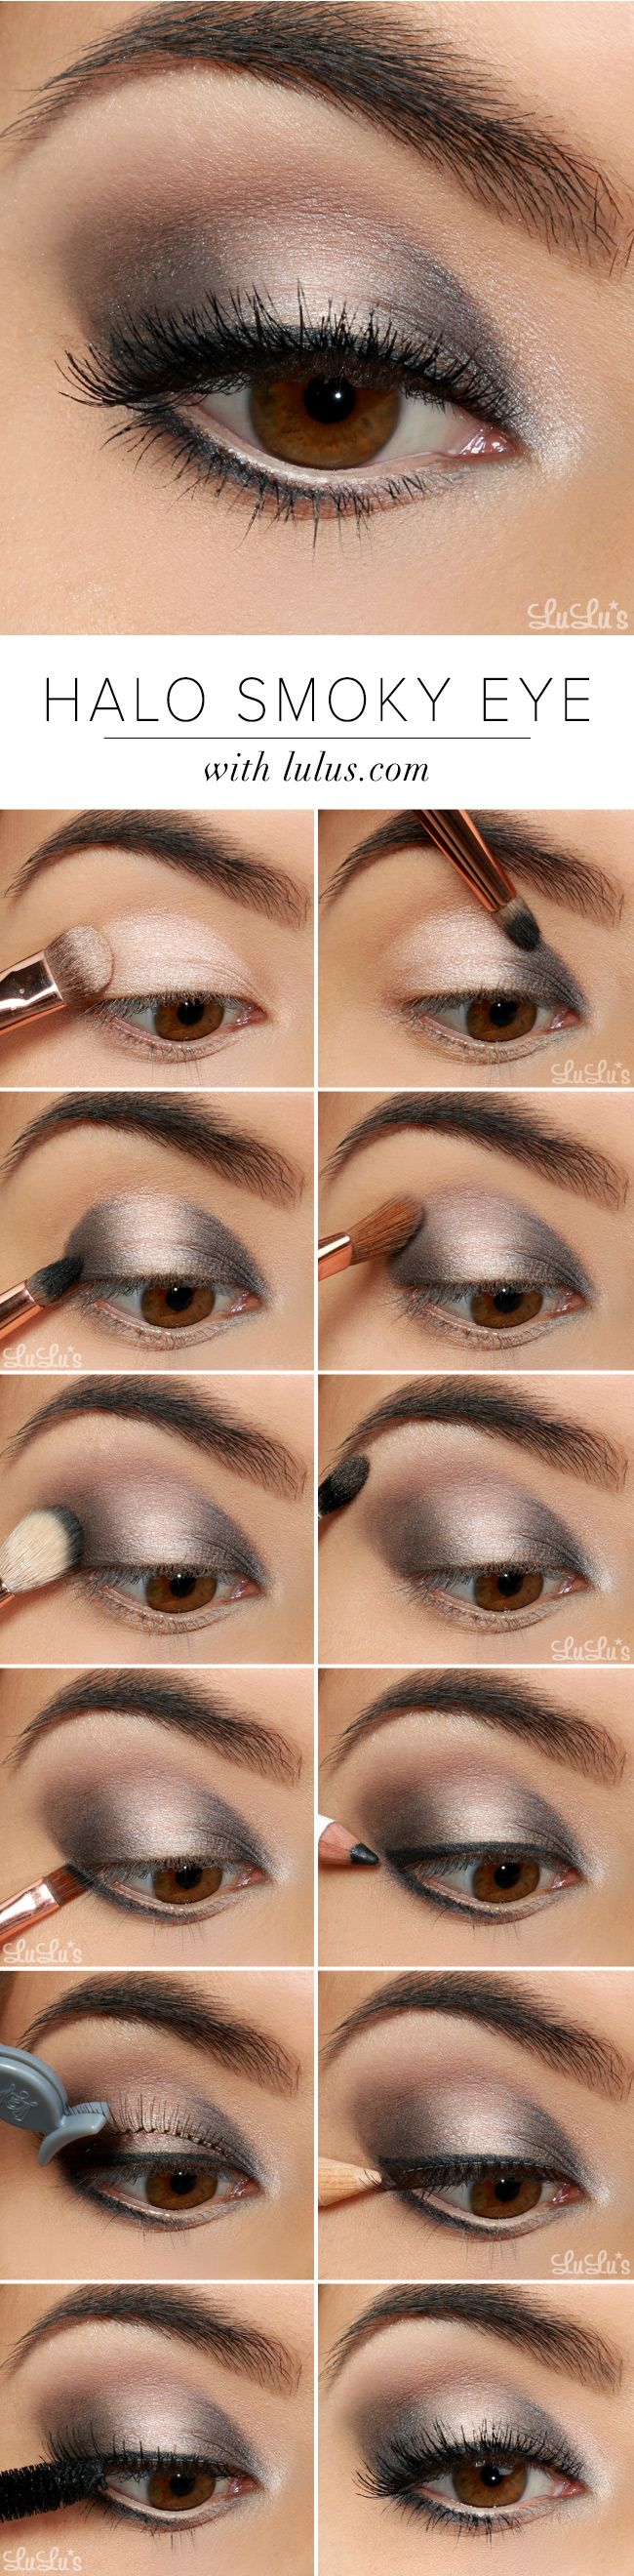 Lulus How-To: Halo Smokey Eye Shadow Tutorial